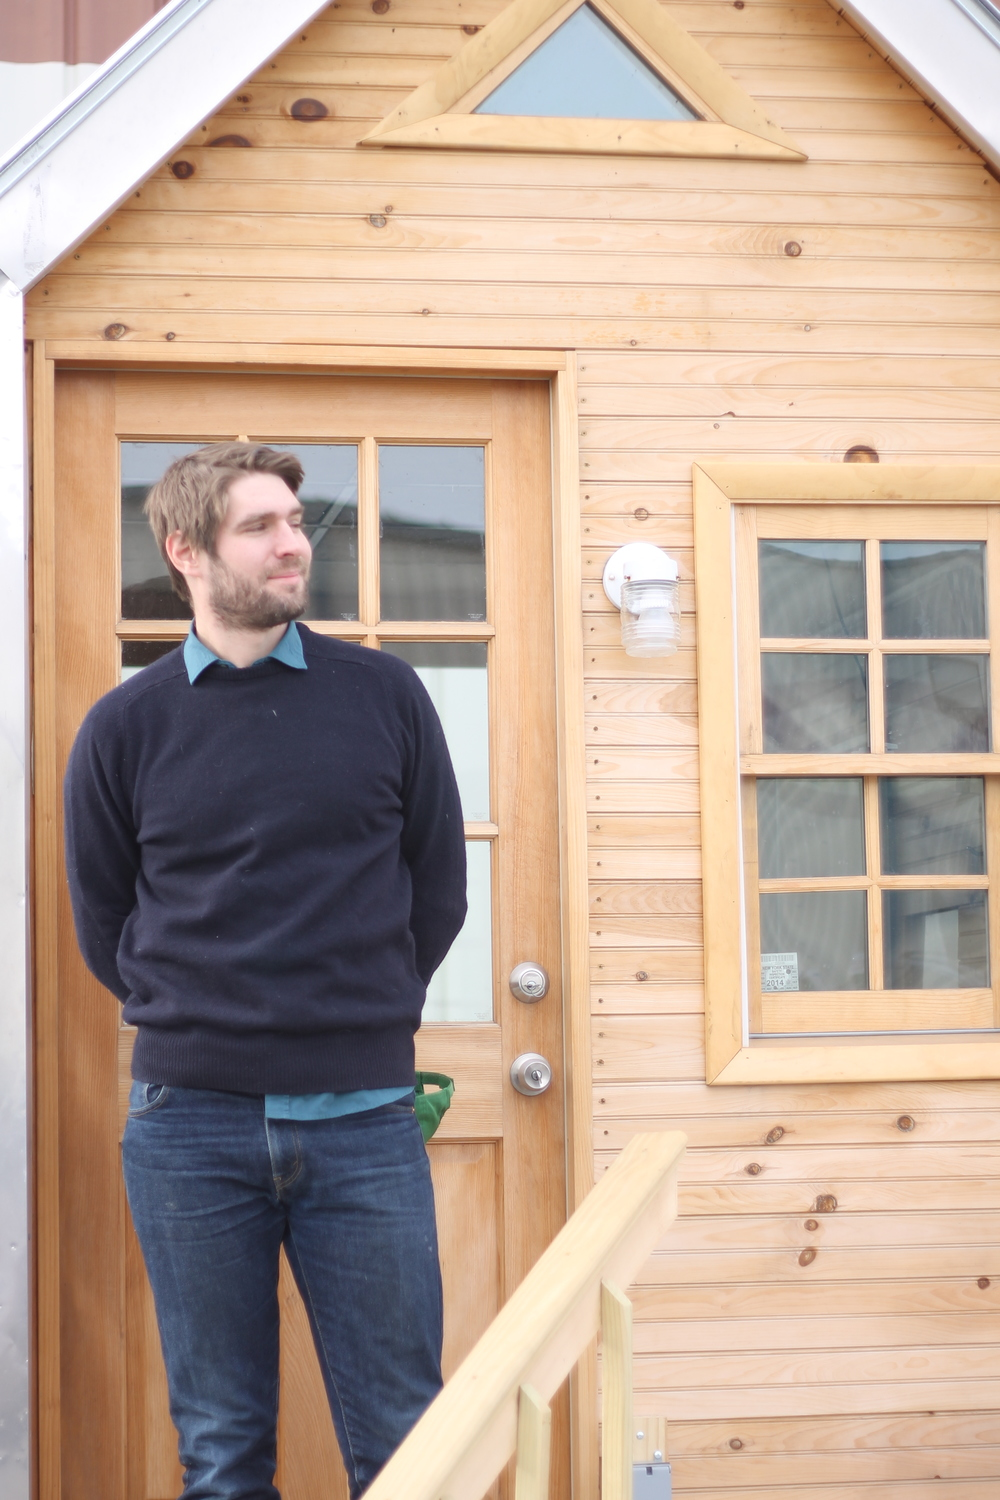 Ecovative CEO Eben Bayer and the company's prototype house insulated with Mushroom Insulation.